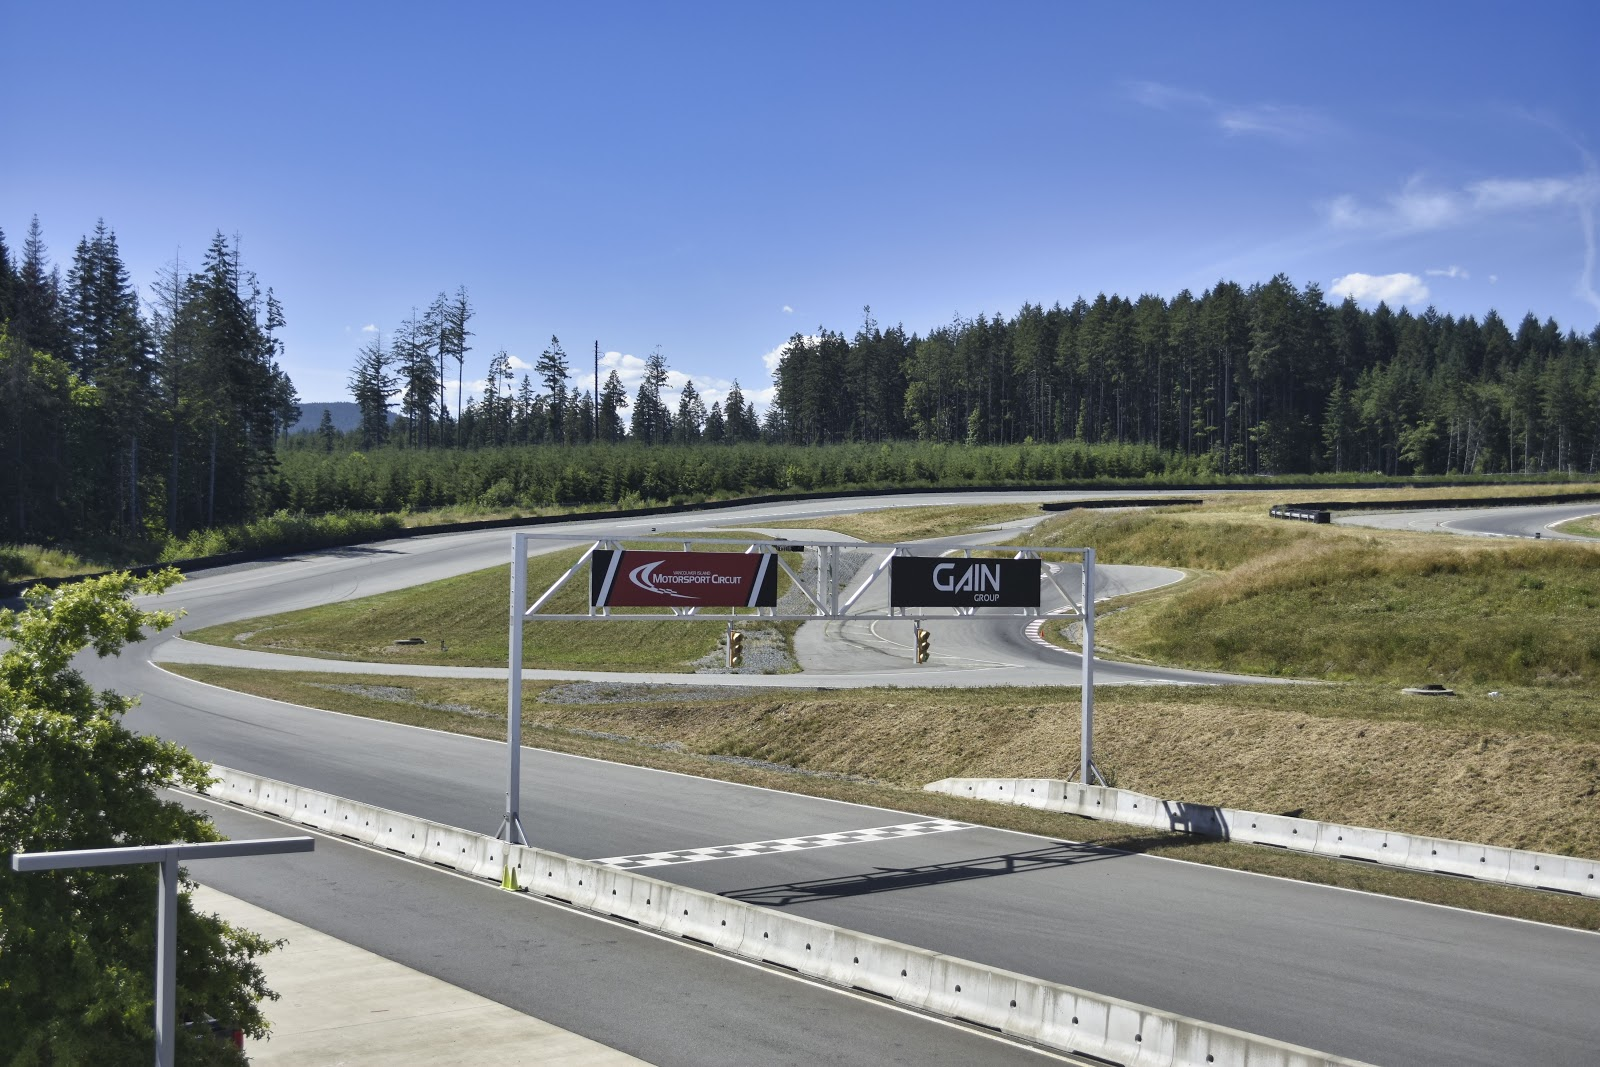 Track at Vancouver Island Motorsports Circuit